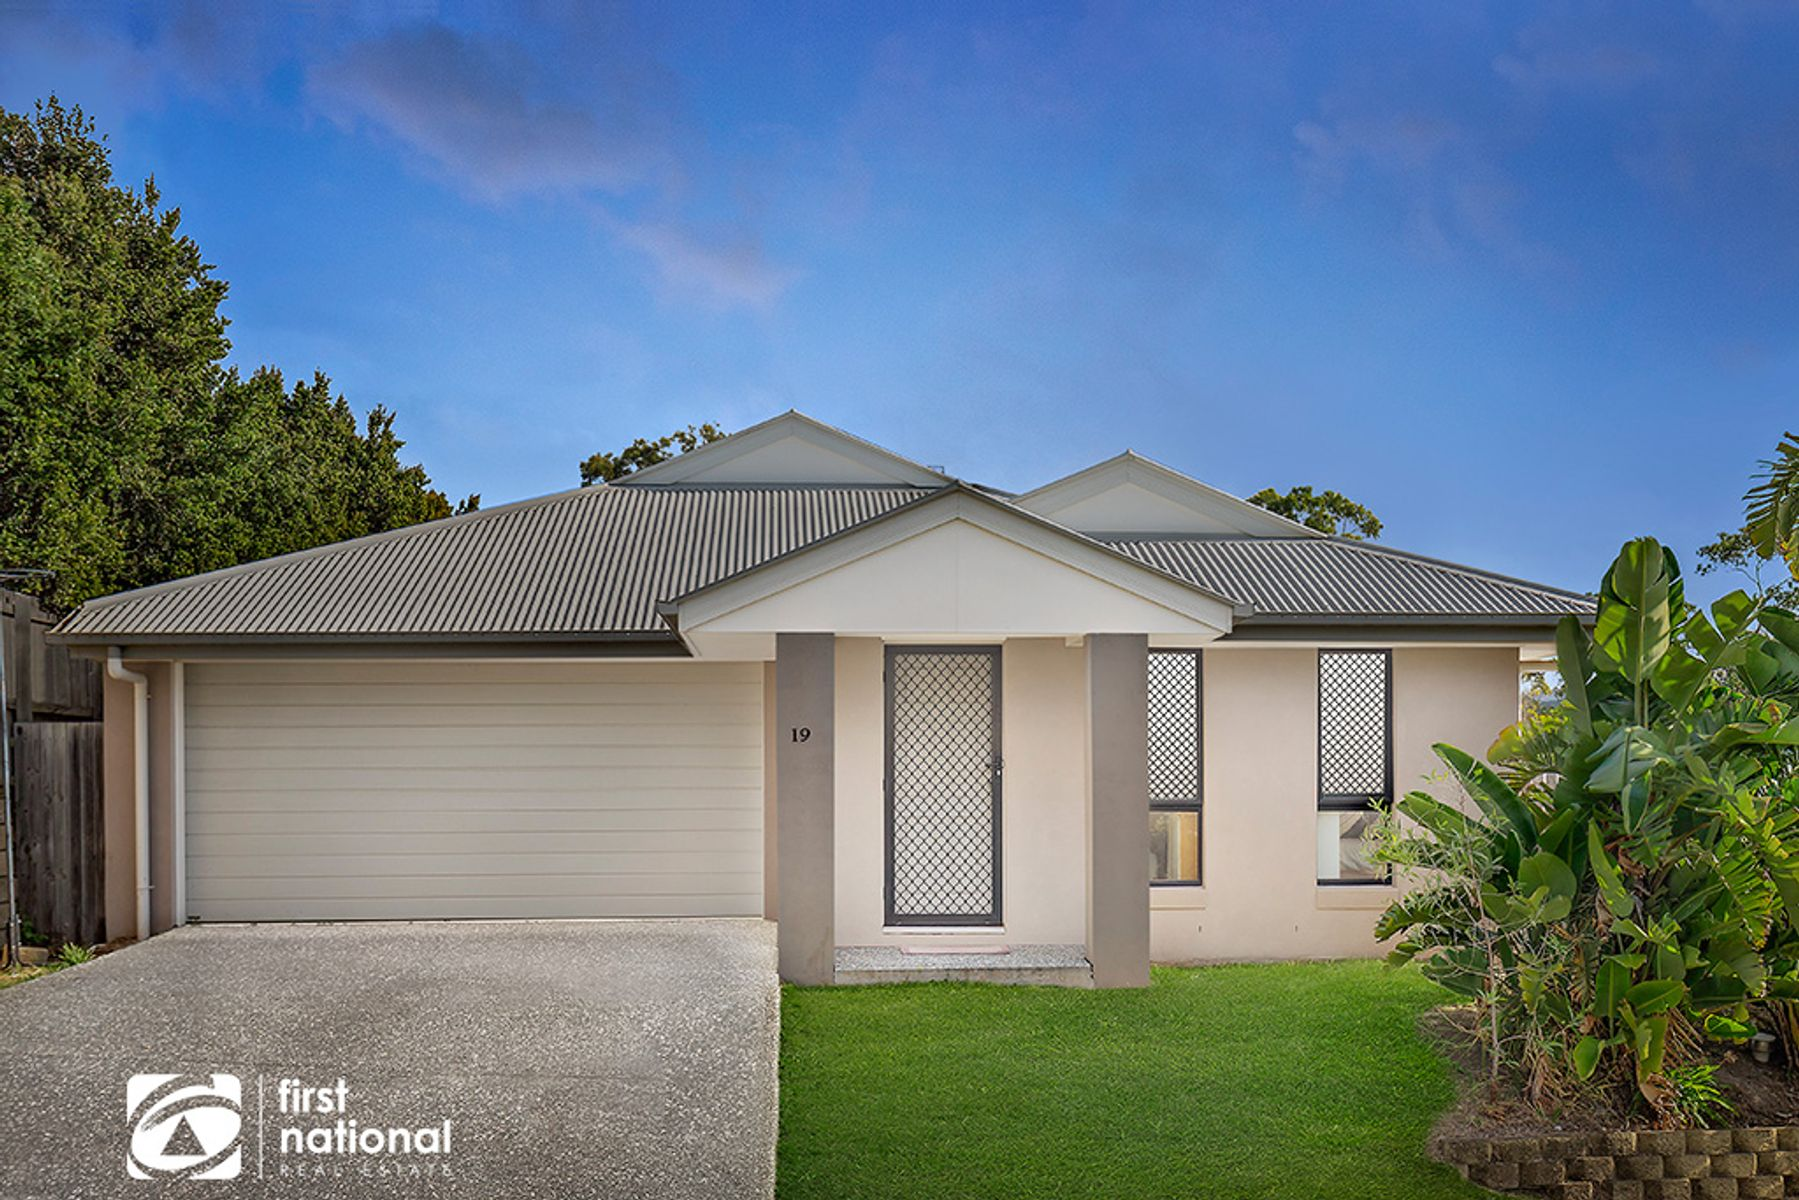 19 Rise Circuit, Pacific Pines, QLD 4211